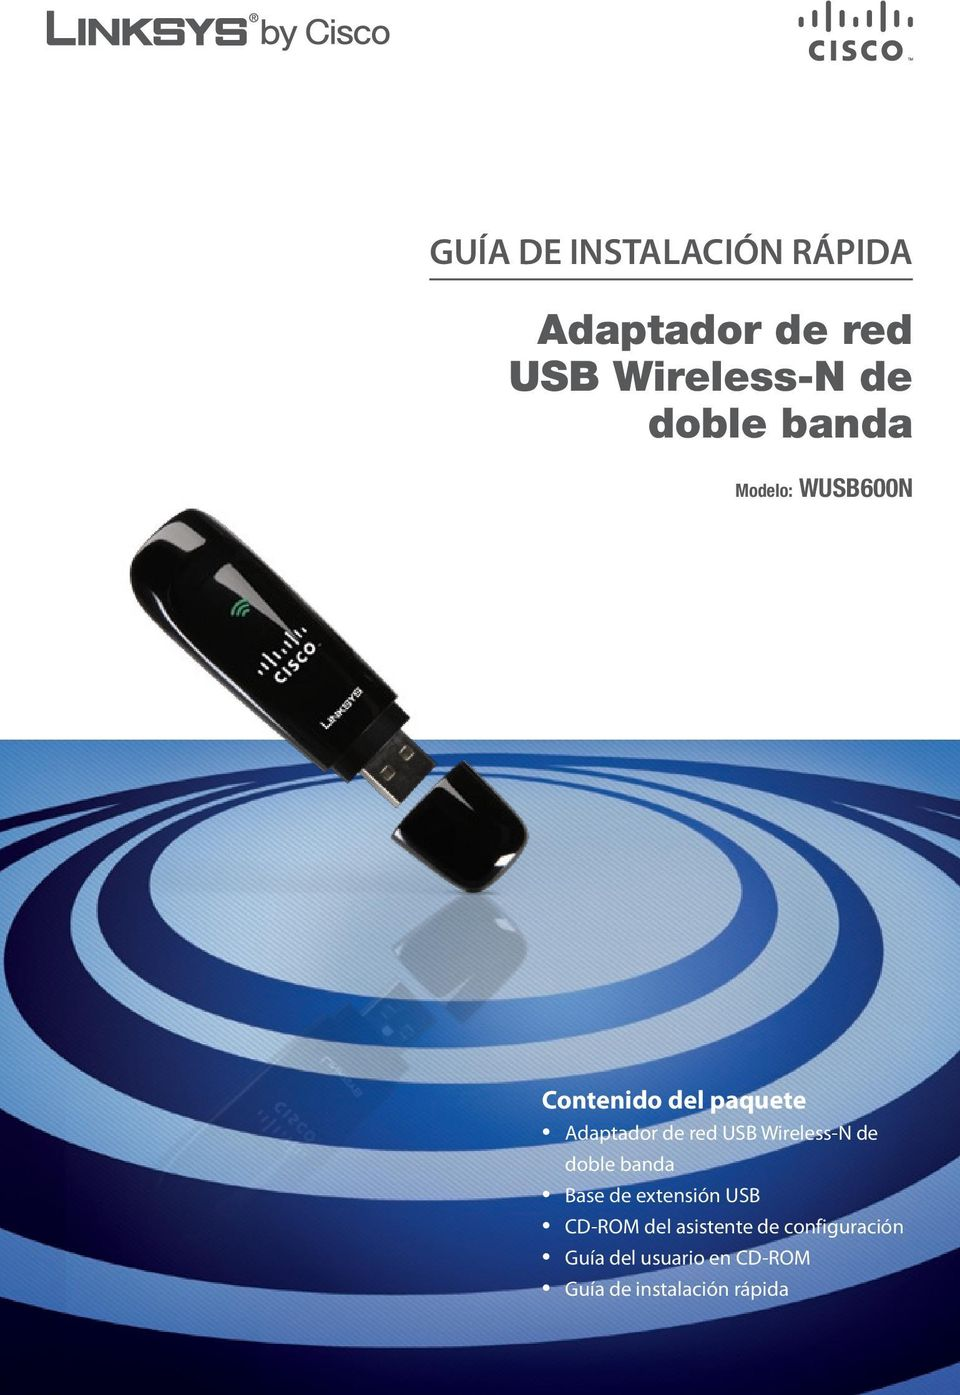 Wireless-N de doble banda Base de extensión USB CD-ROM del asistente